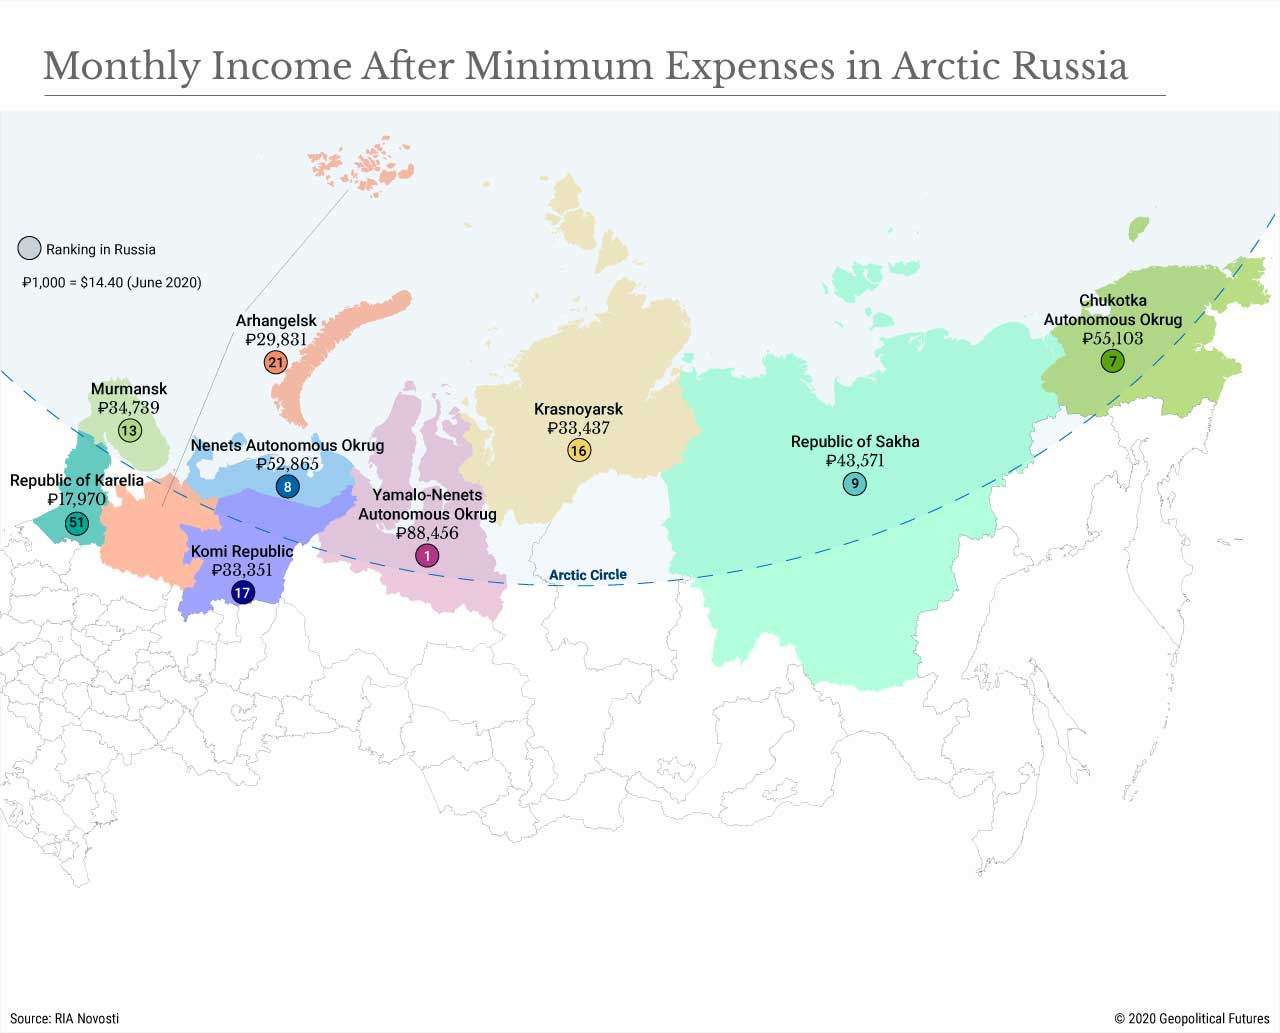 Monthly Income After Minimum Expenses in Arctic Russia